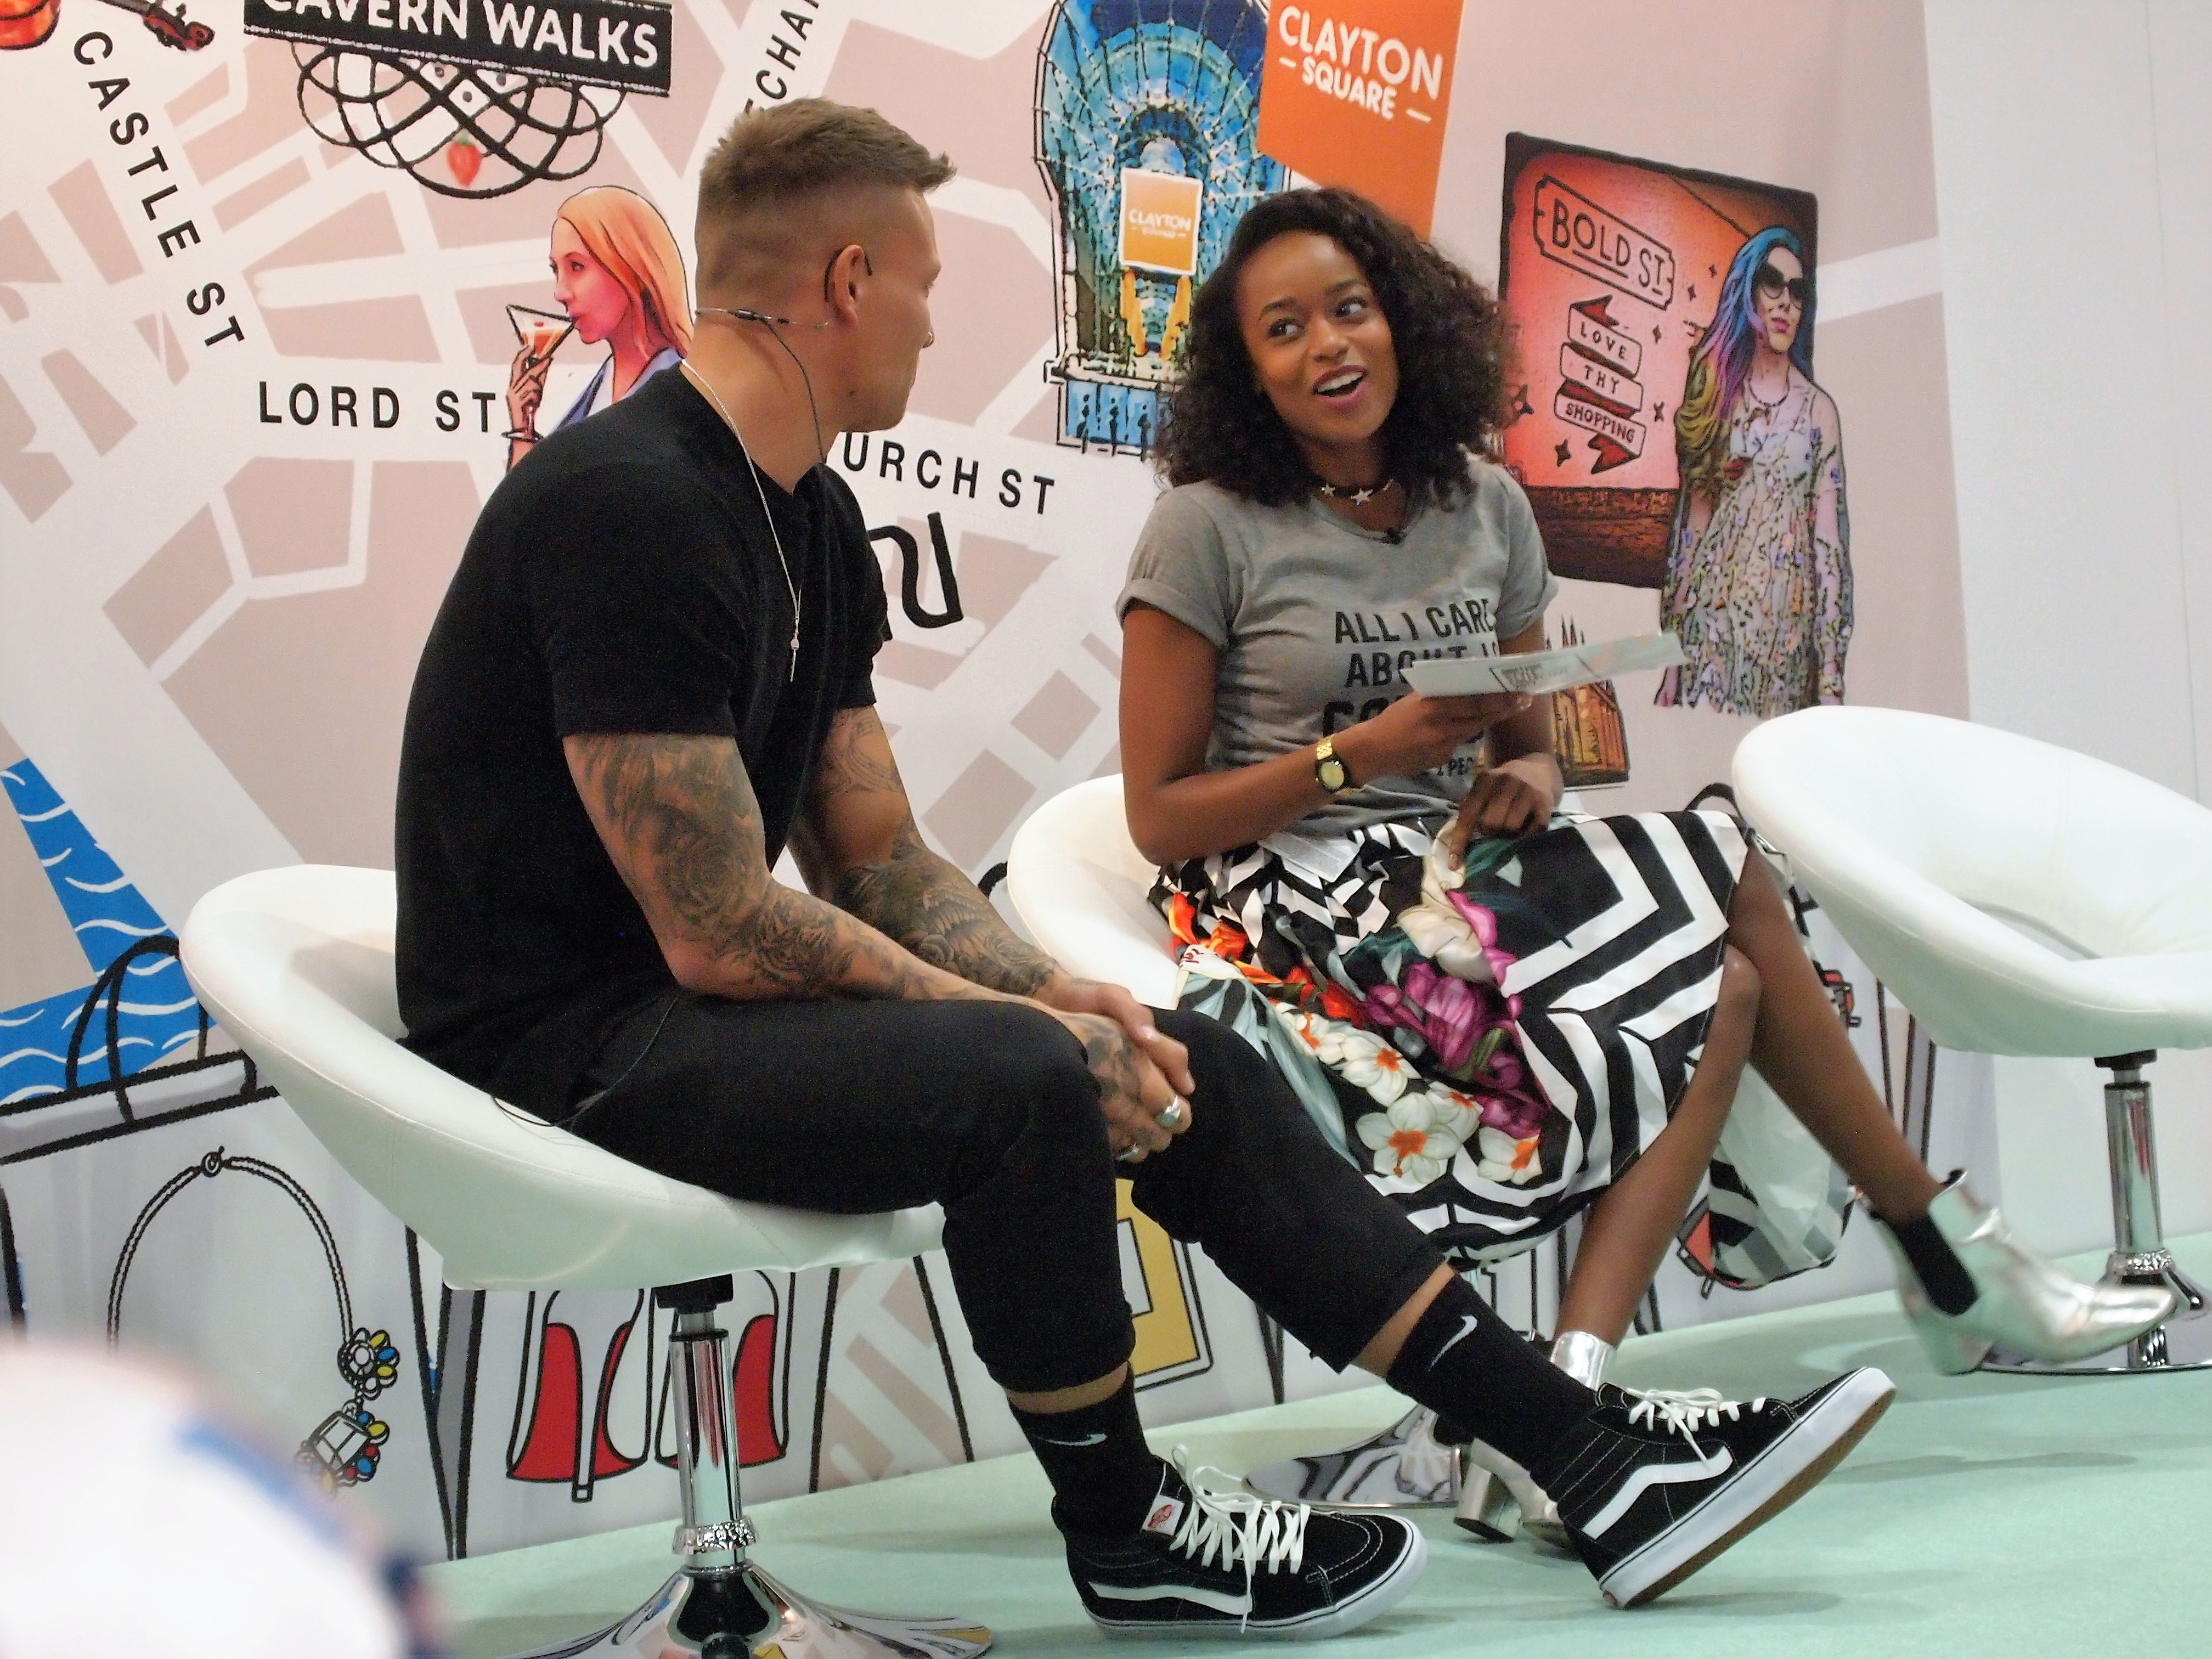 Alex Bowen from Love Island speaks about his plans for the future on the Expert Stage